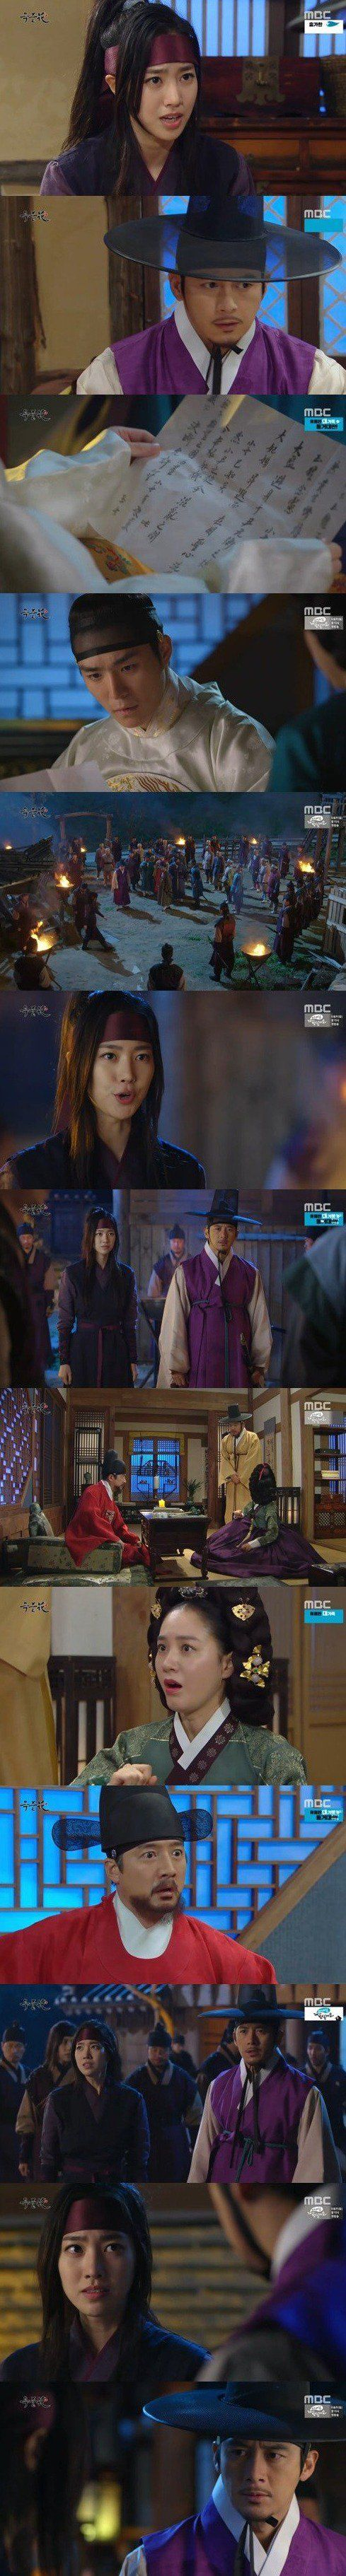 [Spoiler] Added final episodes 50 and 51 captures for the #kdrama 'The Flower in Prison'